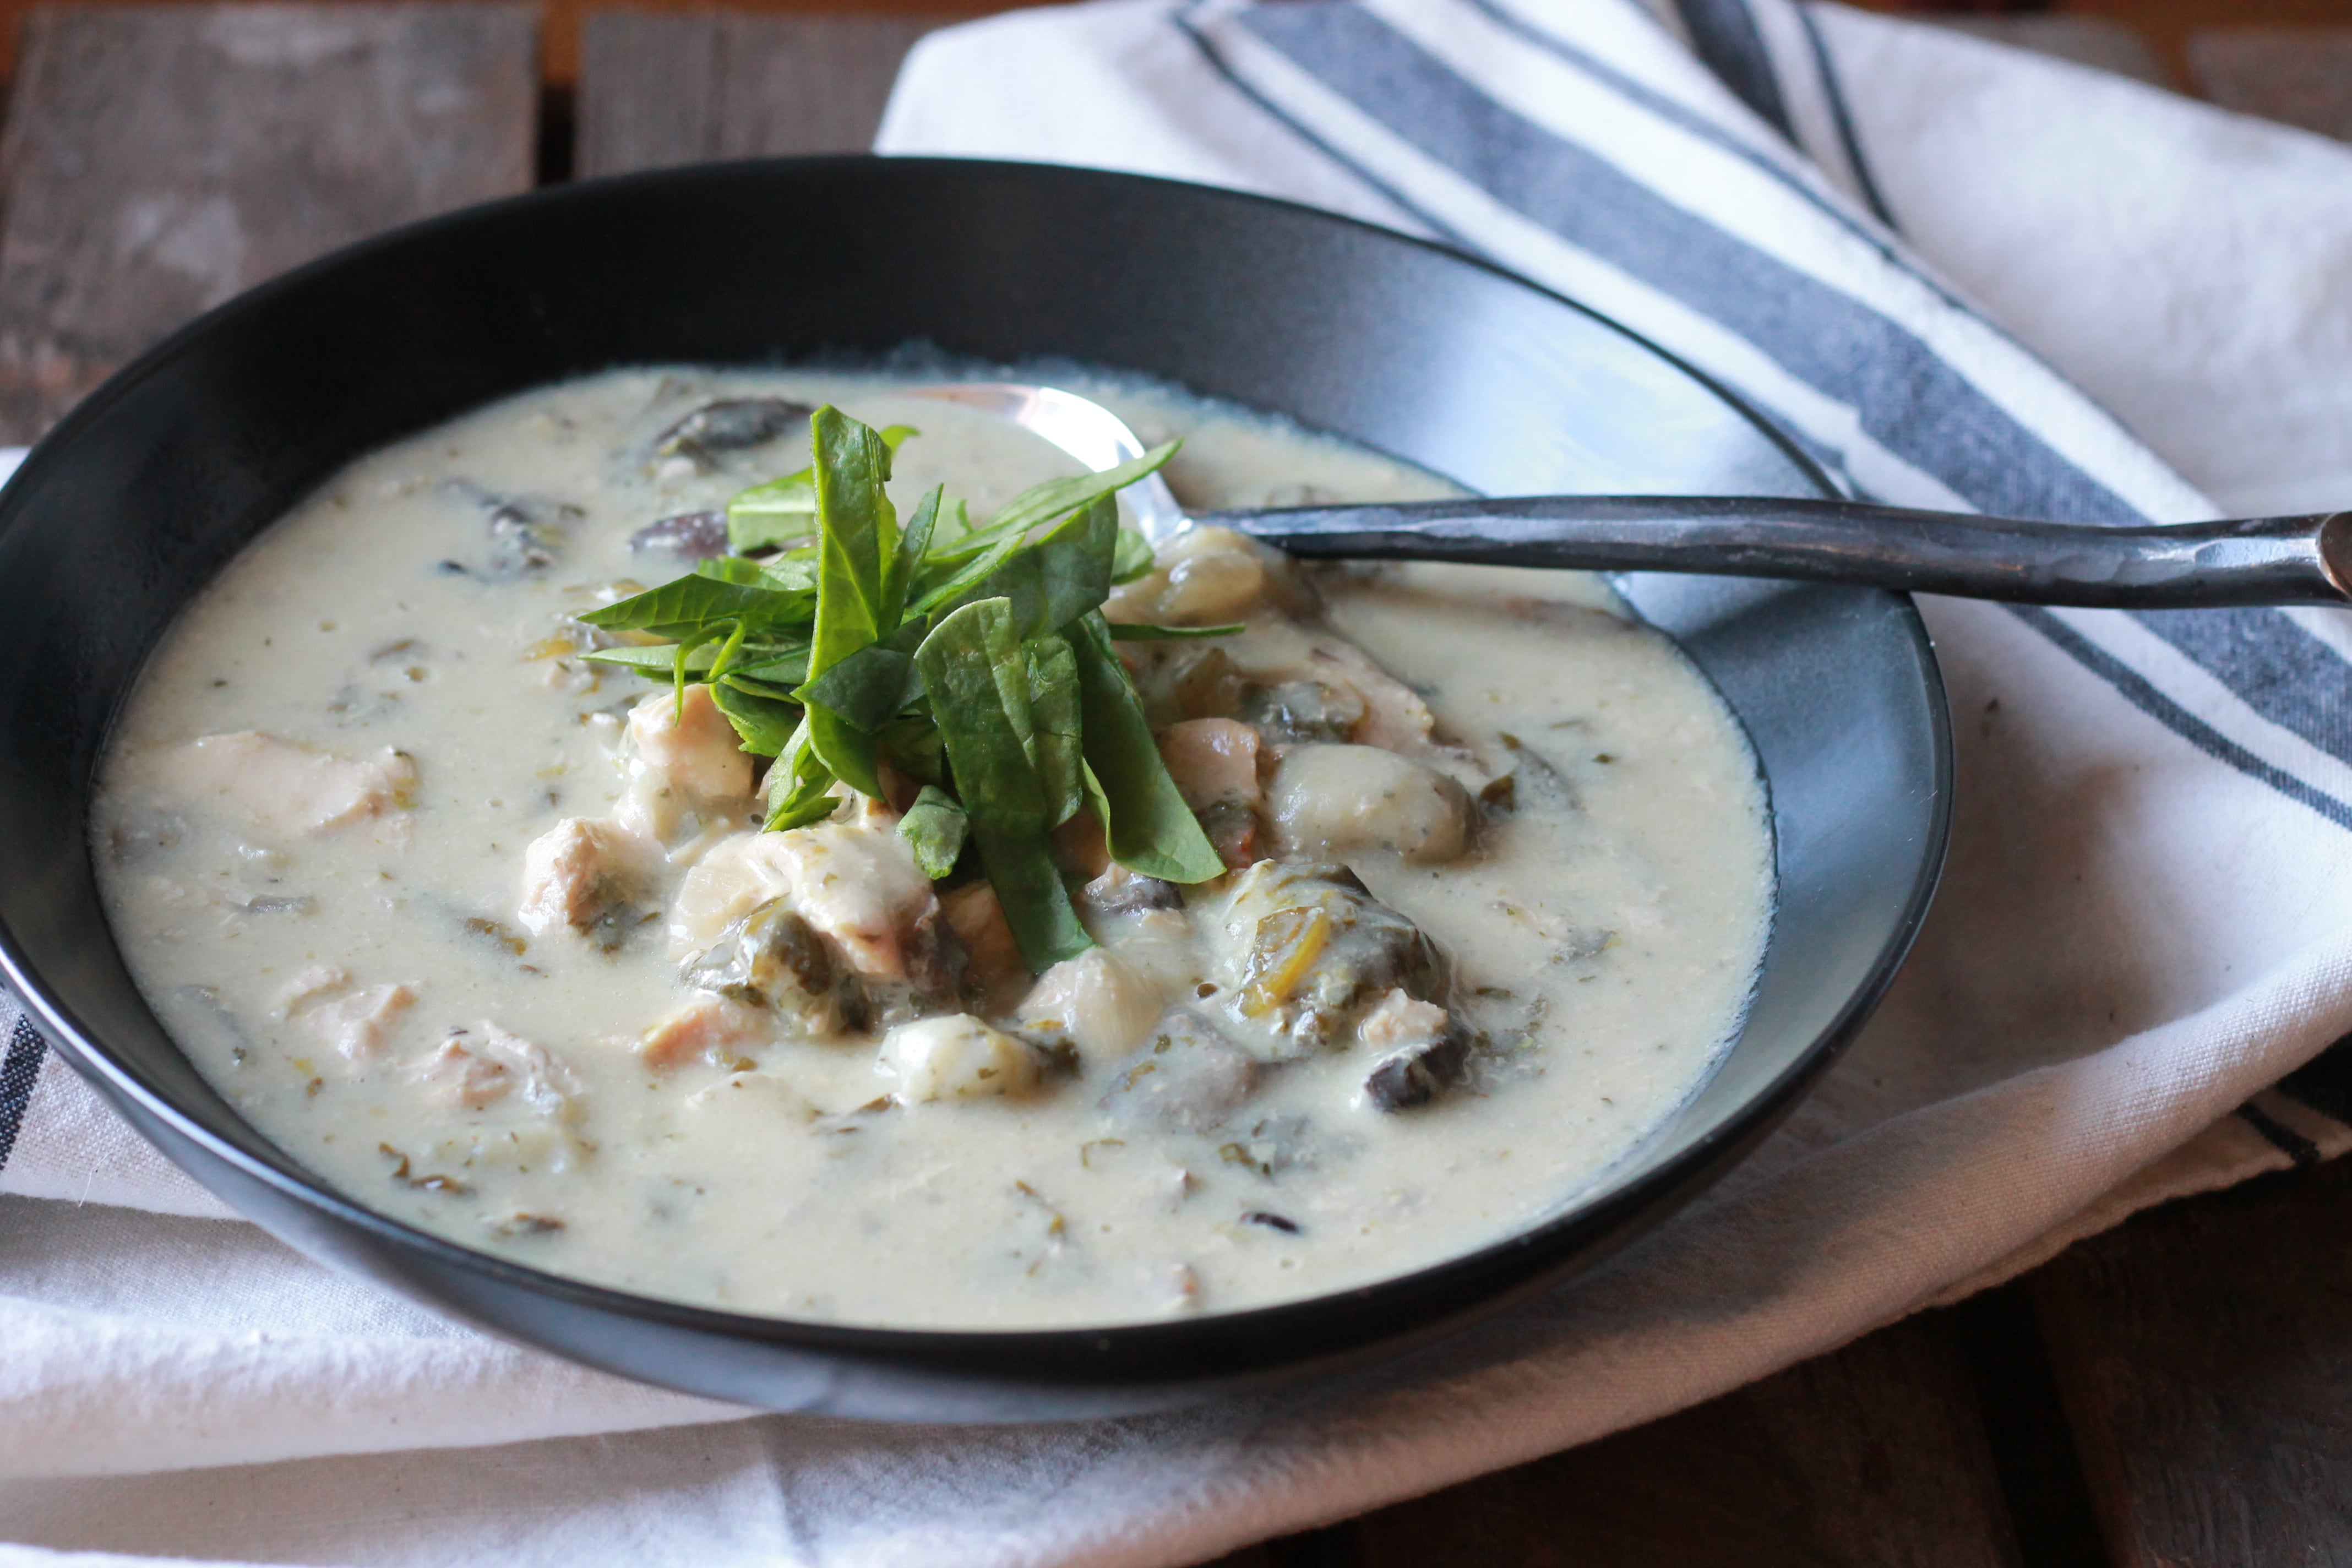 creamy chicken gnocchi soup served with mushrooms and topped with green spinach leaves in a black - Olive Garden Gnocchi Soup